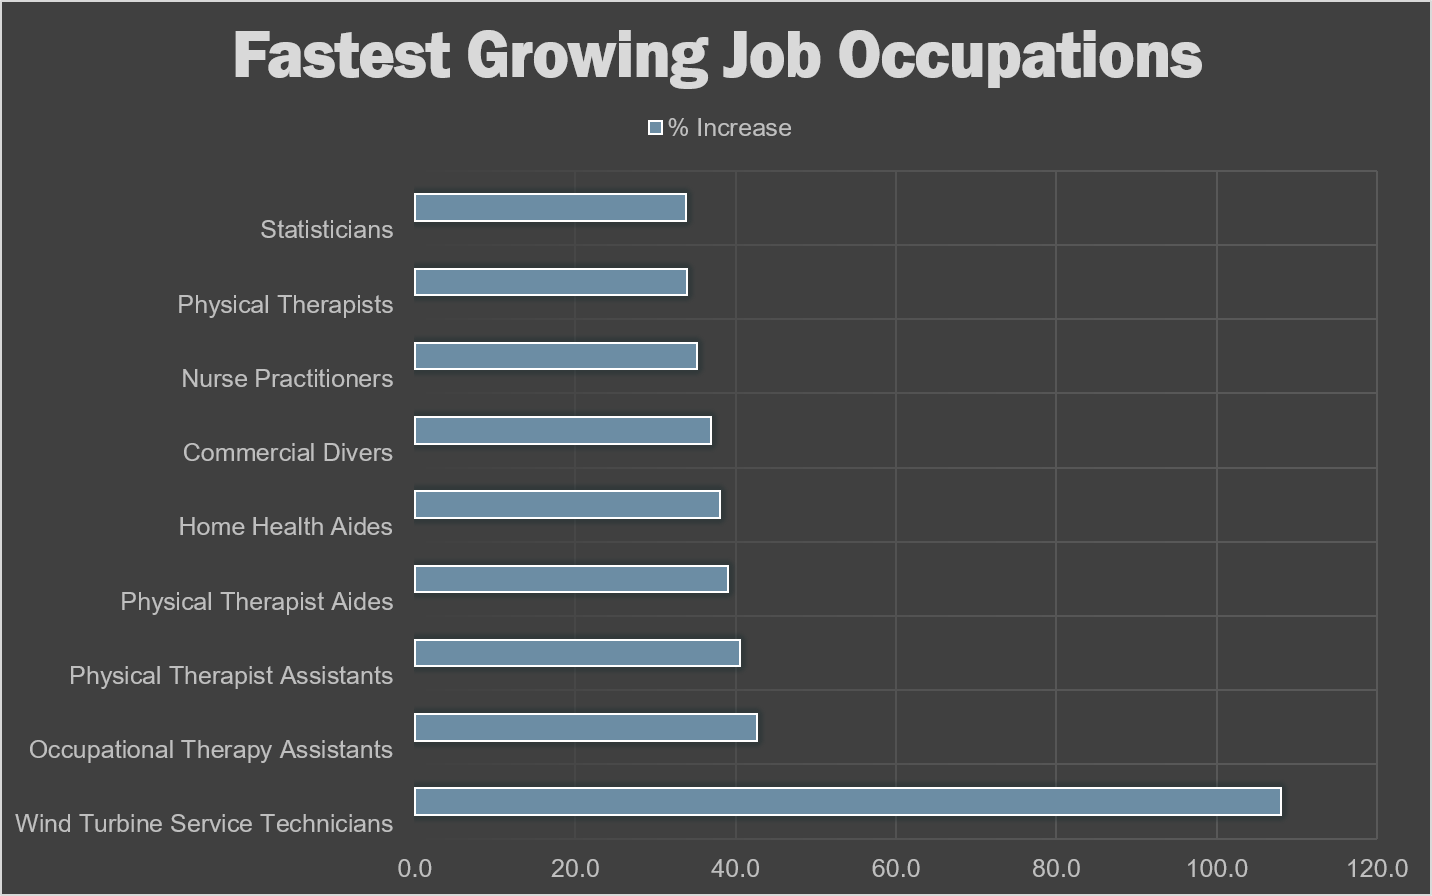 BLS_Fastest_Growing_Jobs_2024.png